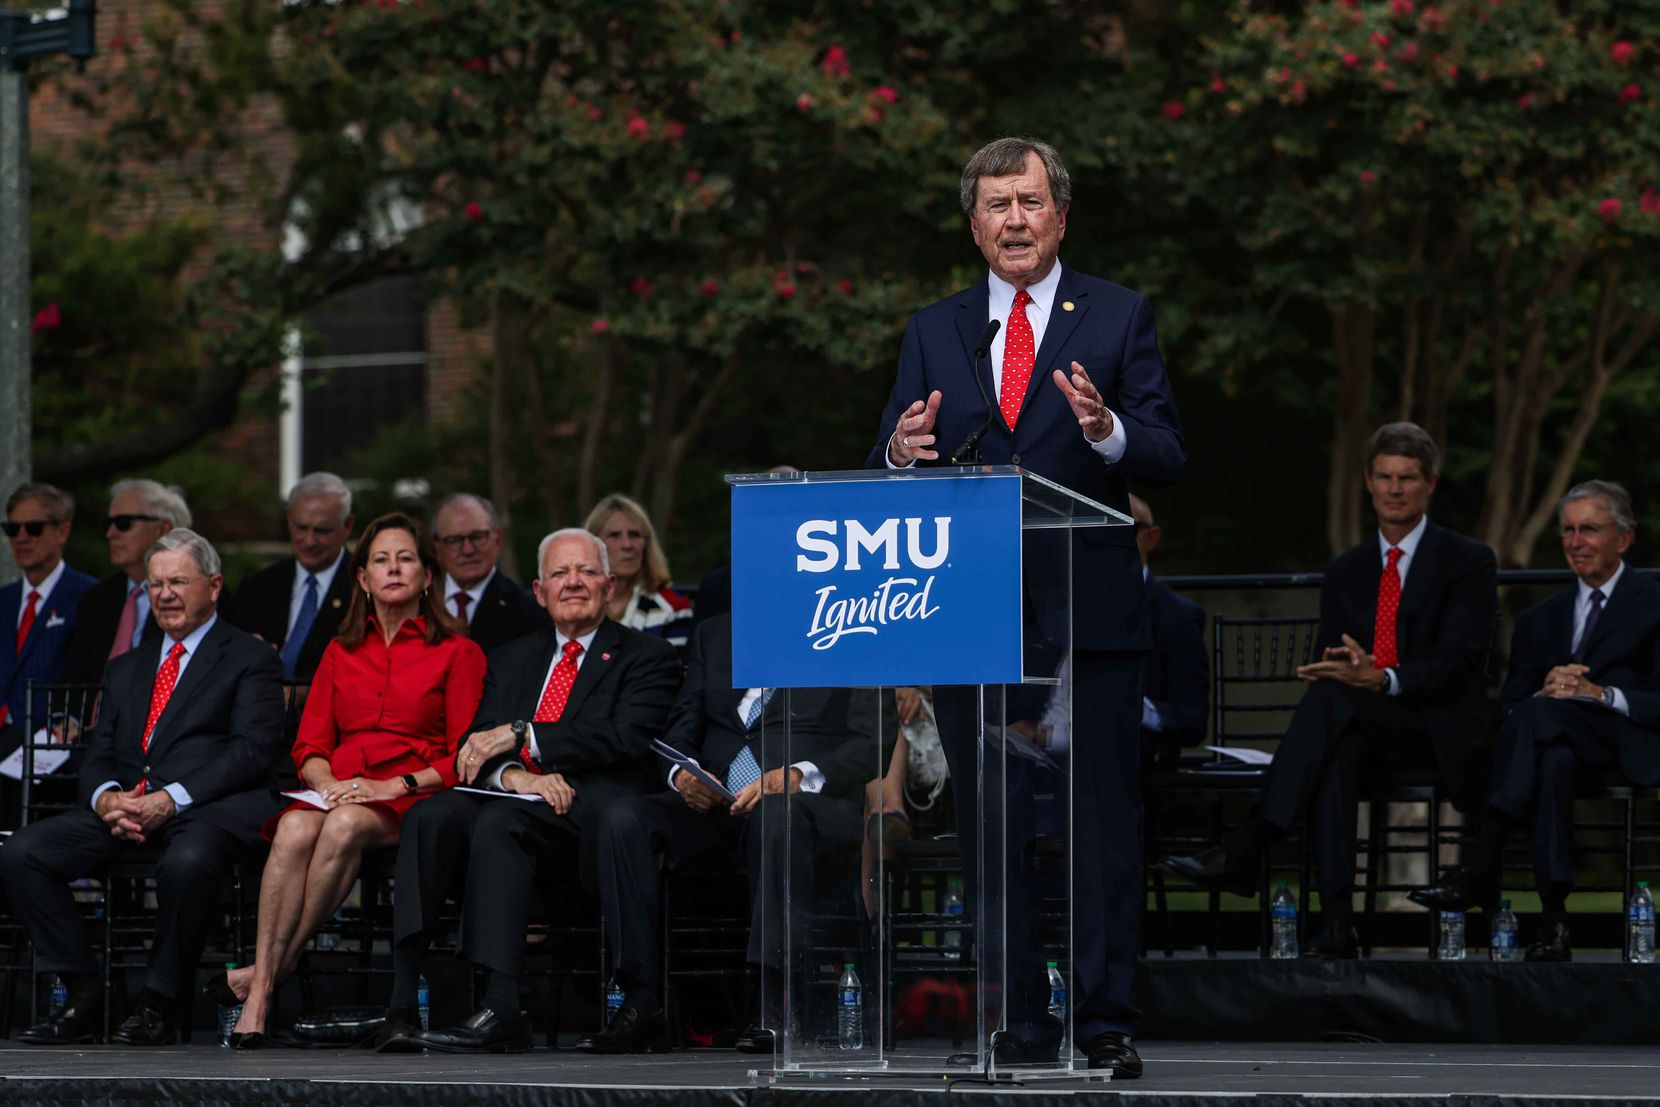 SMU President R. Gerald Turner addressed the attendees during the announcement on Sept. 17, 2021, of a multiyear fundraising campaign that will deliver major benefits to the city and the North Texas region.